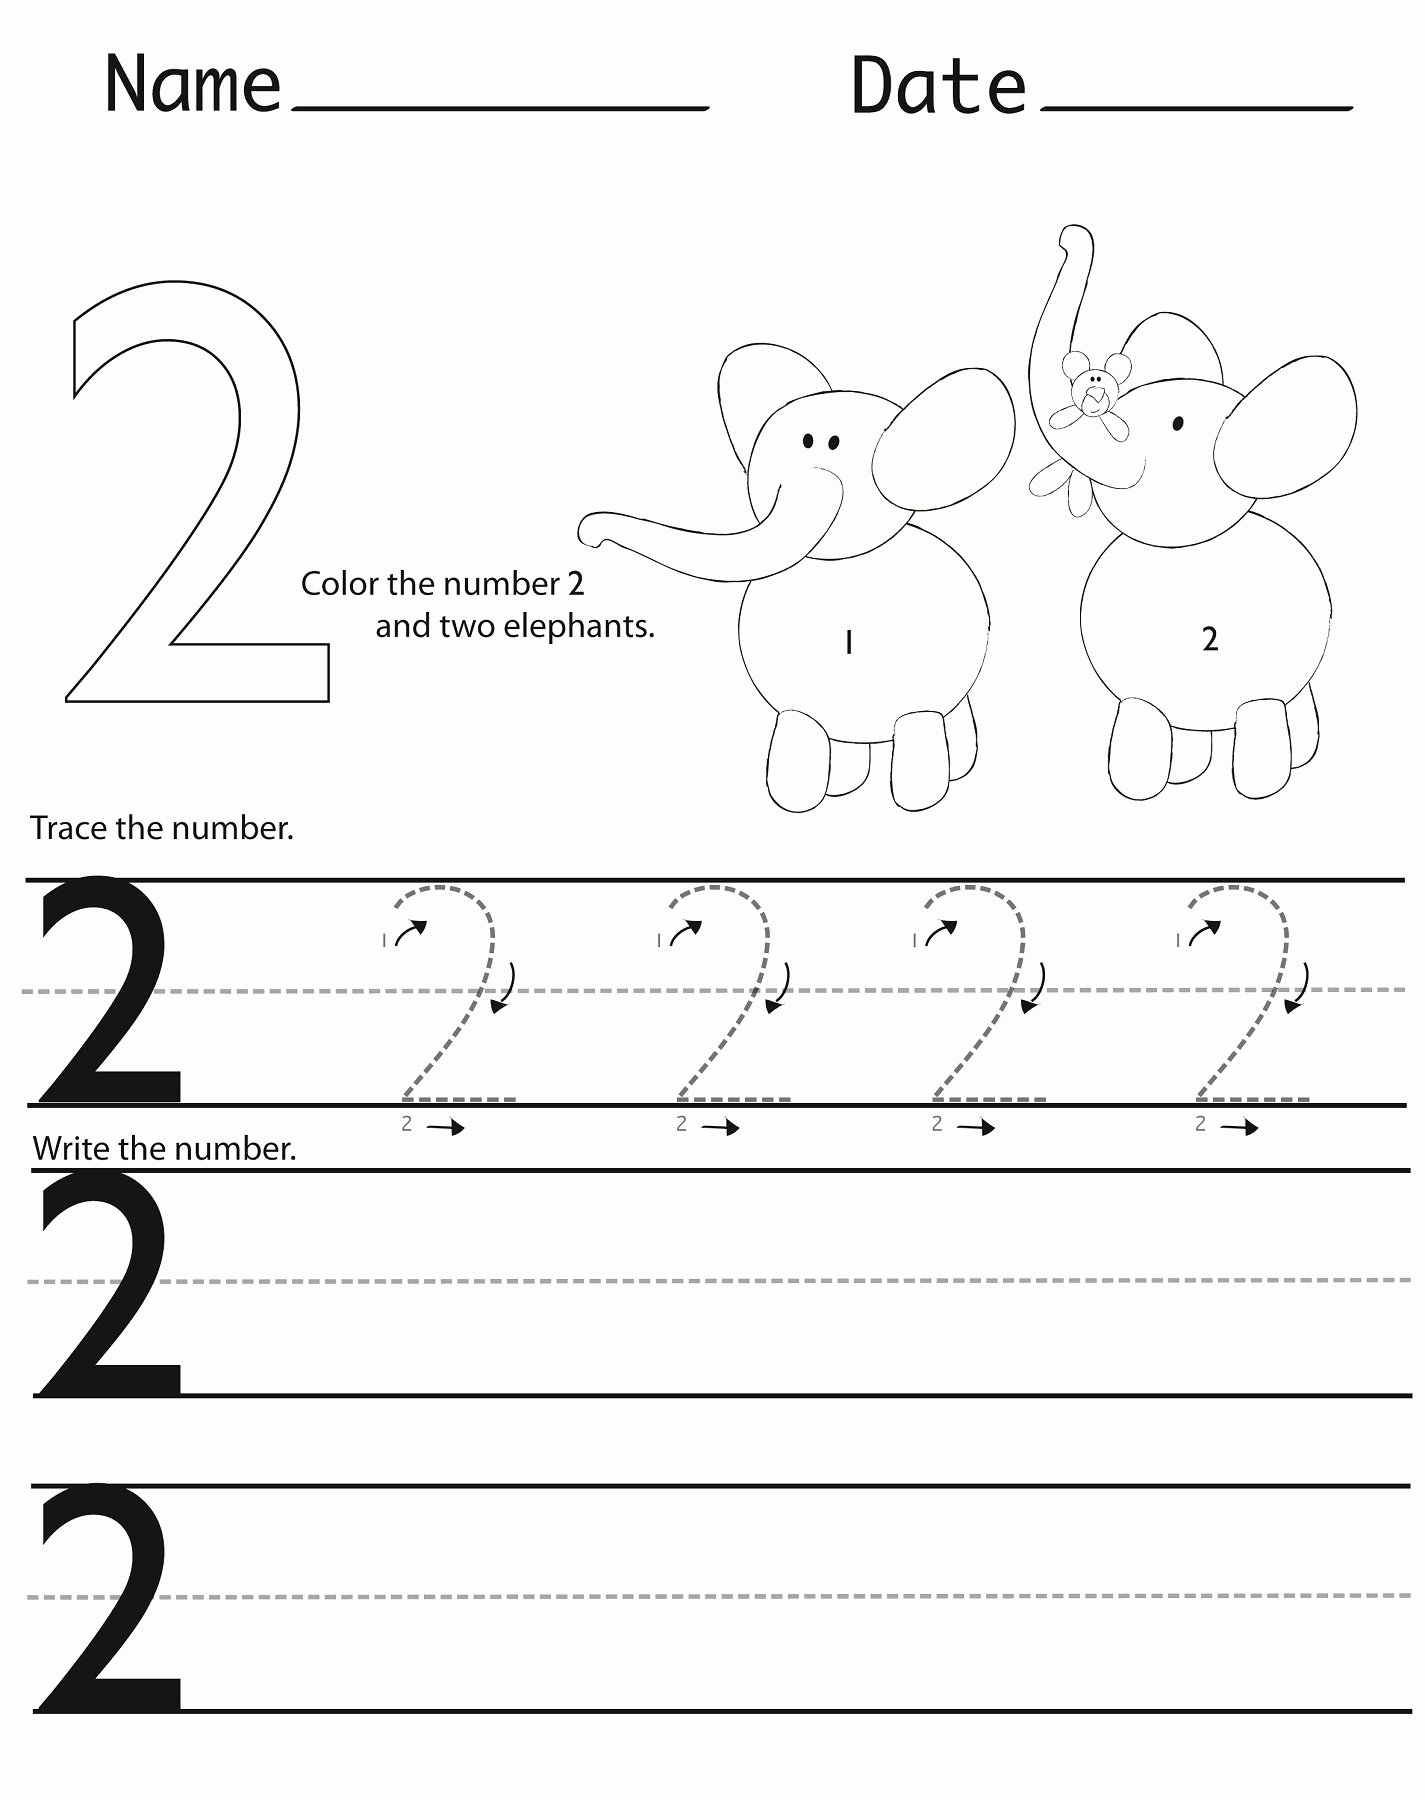 Number Two Worksheets for Preschoolers New Writing Numbers Worksheets Printable